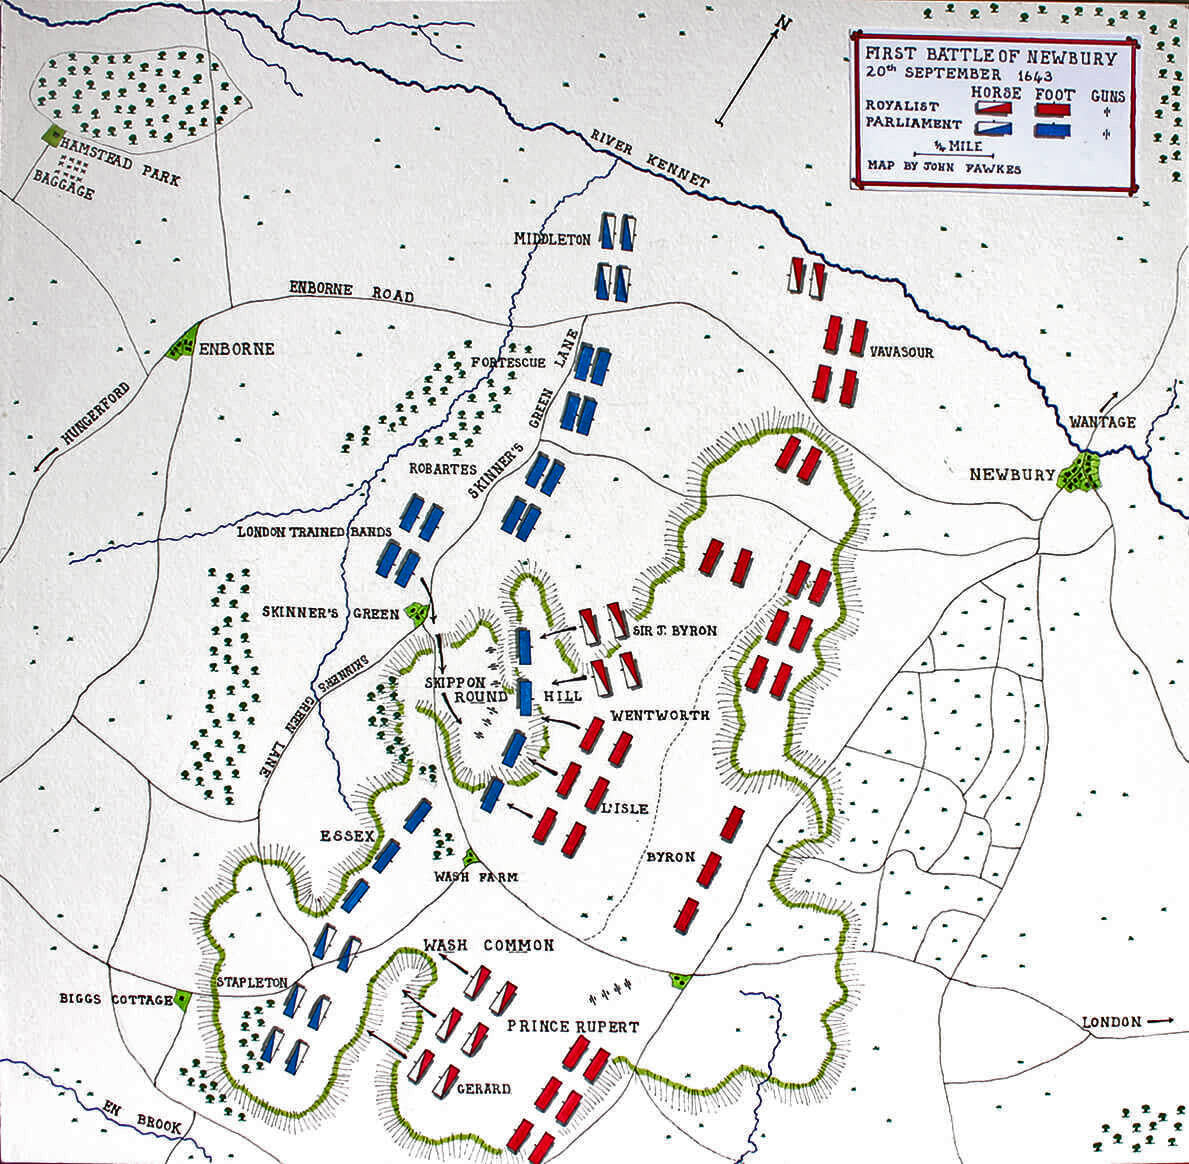 Map of the First Battle of Newbury 20th September 1643 in the English Civil War: map by John Fawkes